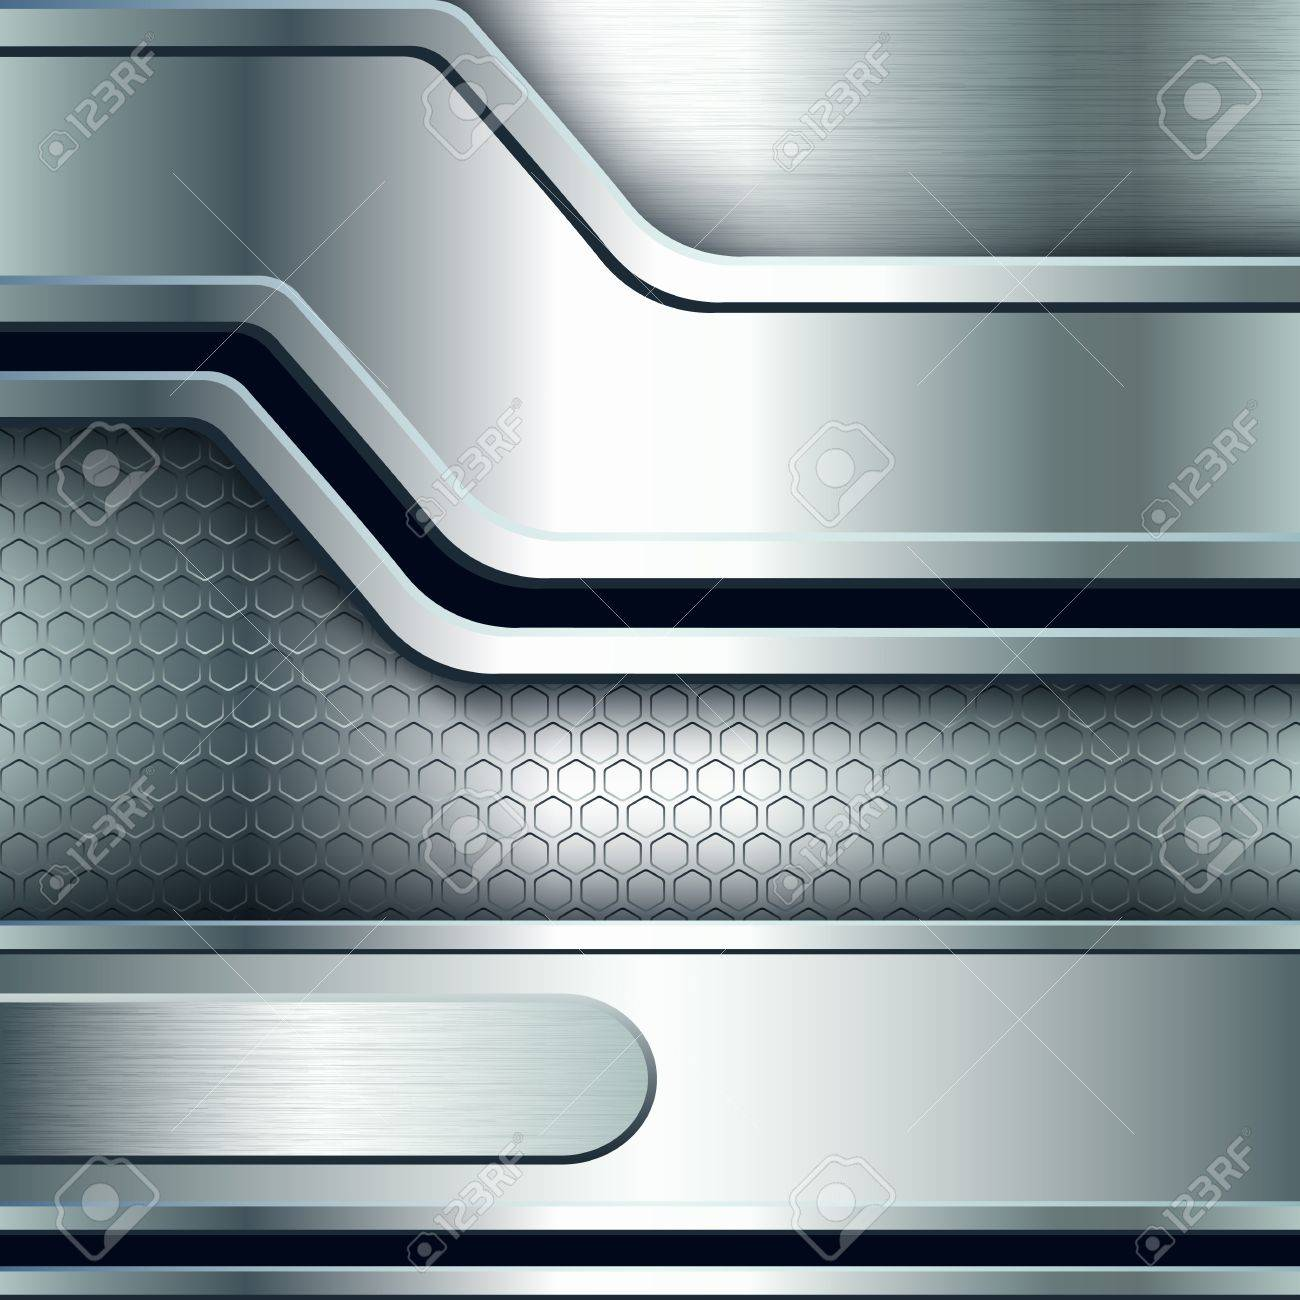 Abstract background, metallic silver banners  Vector illustration Stock Vector - 18991462